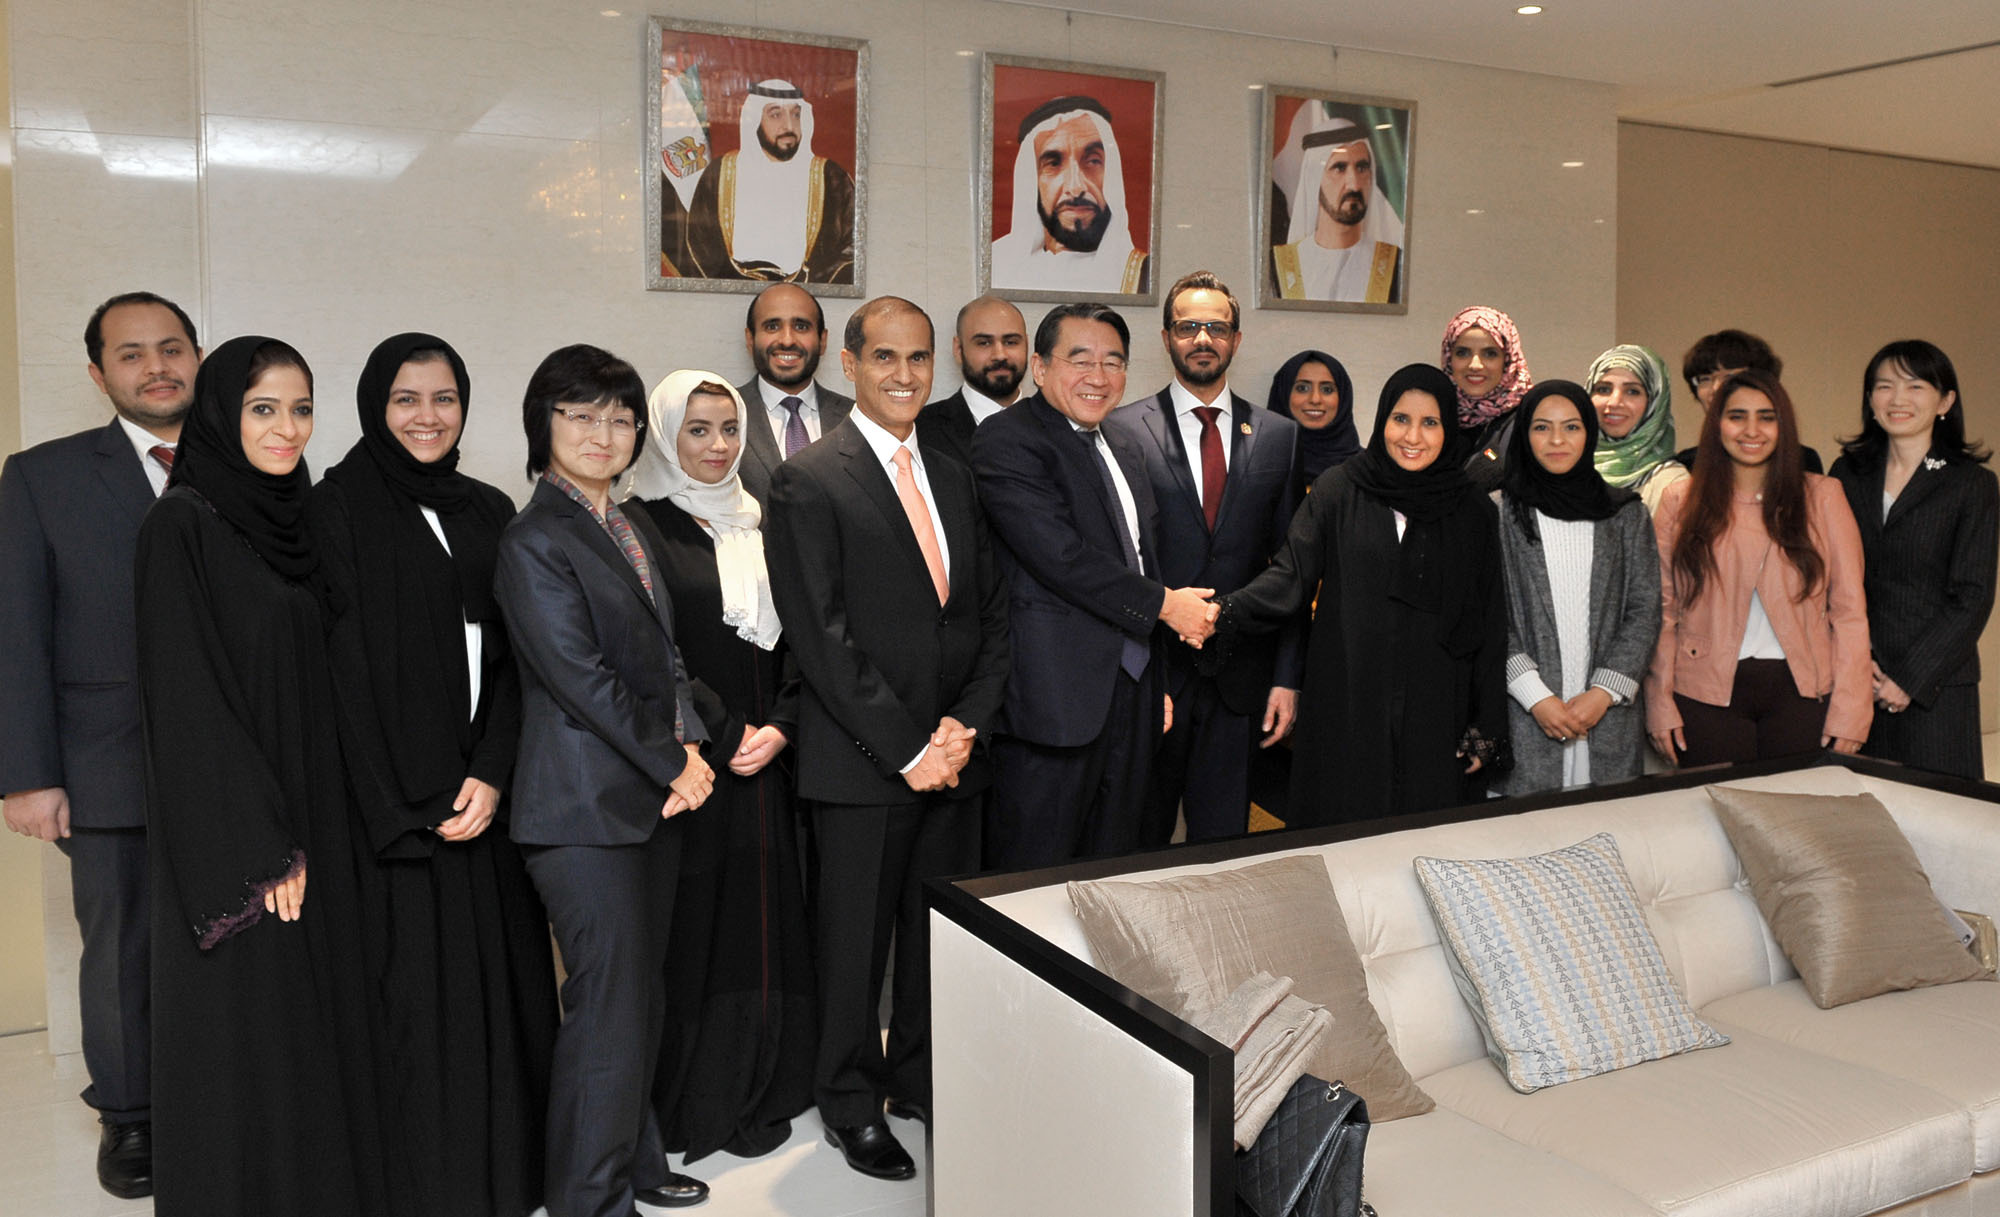 State Minister Maitha Al Shamsi (front row, fourth from right) of the United Arab Emirates shakes hands with Japan Cooperation Center, Petroleum CEO Tsuyoshi Nakai in front of UAE Ambassador Khaled Alameri at a dinner party at the ambassador's residence in Tokyo on Nov. 21. They were joined by female UAE exchange students, Japanese oil company staff and UAE diplomats. | YOSHIAKI MIURA